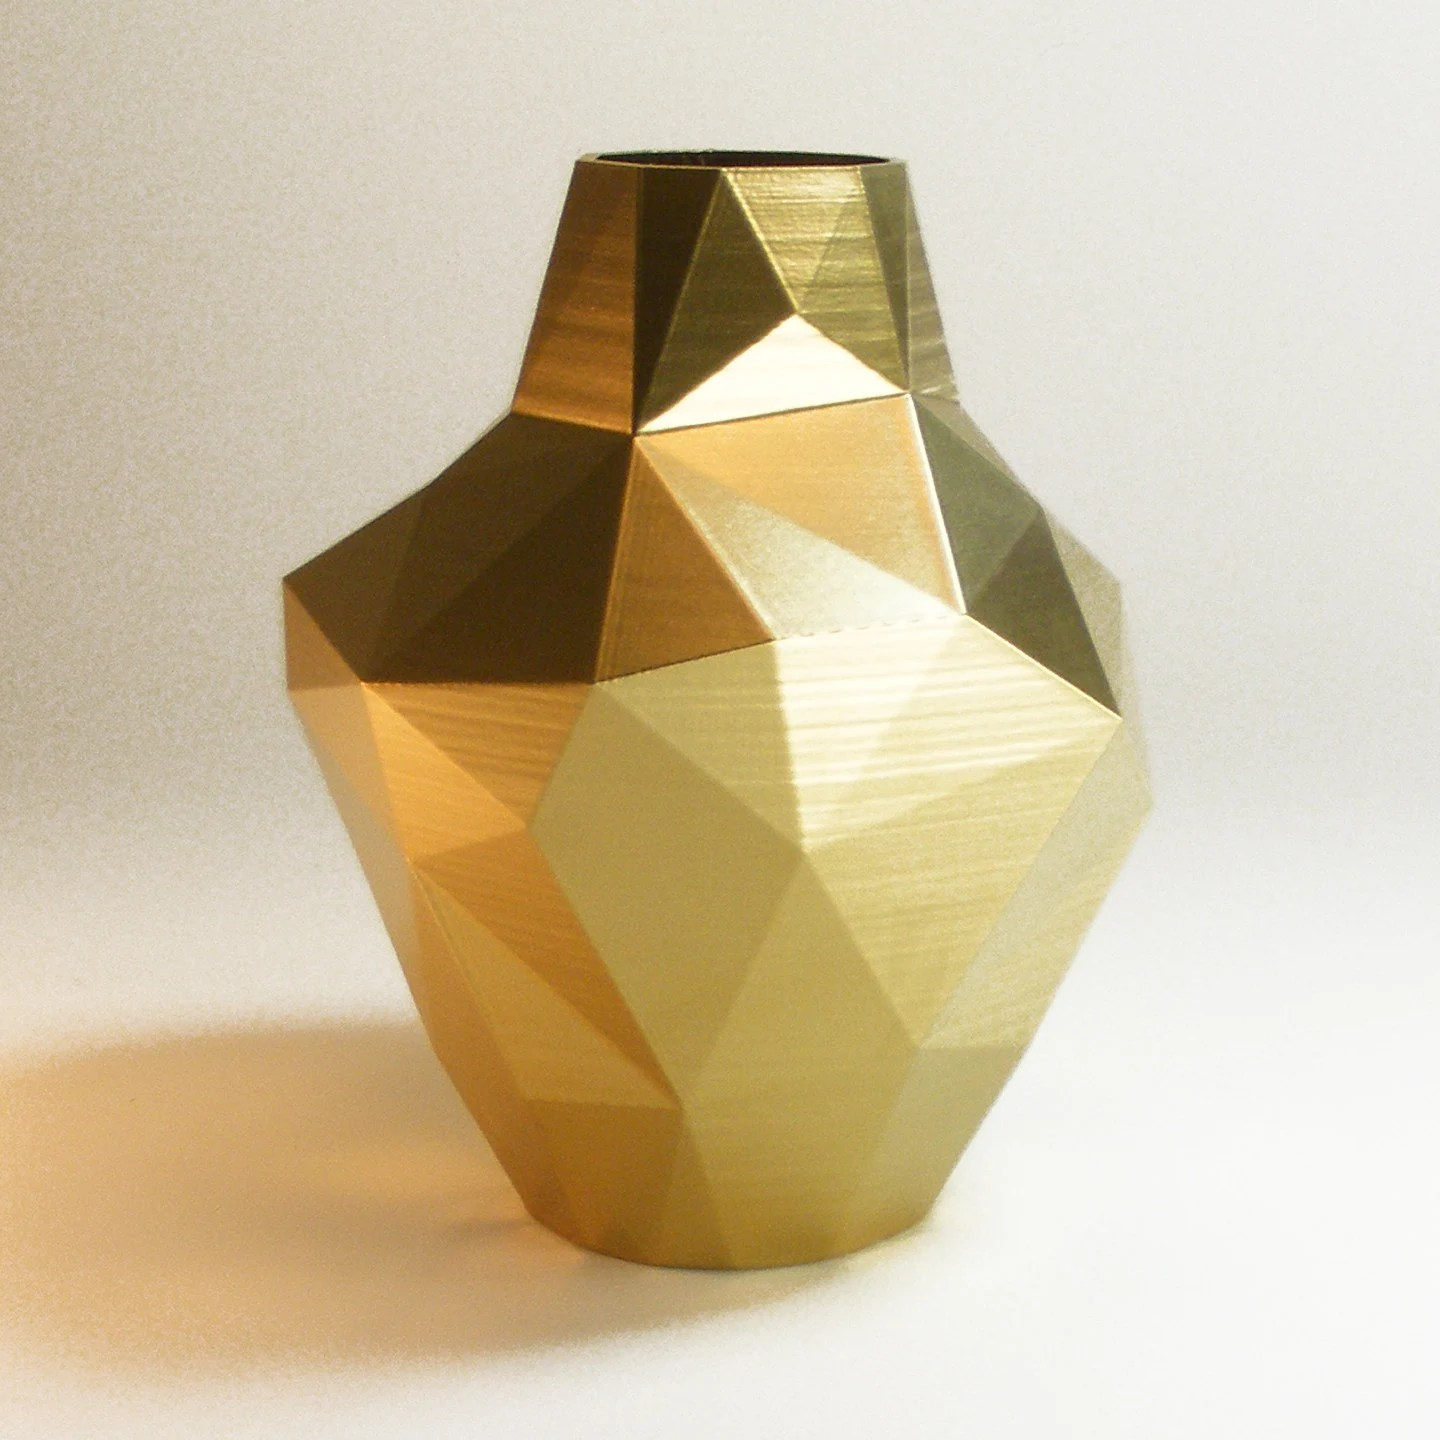 Vase Gold Decorative Vases Modern Gold Vase Abstract Zen Decor Golden Decor Golden Triangle Vase Gold Decor Gold Bud Vase Modern Vase